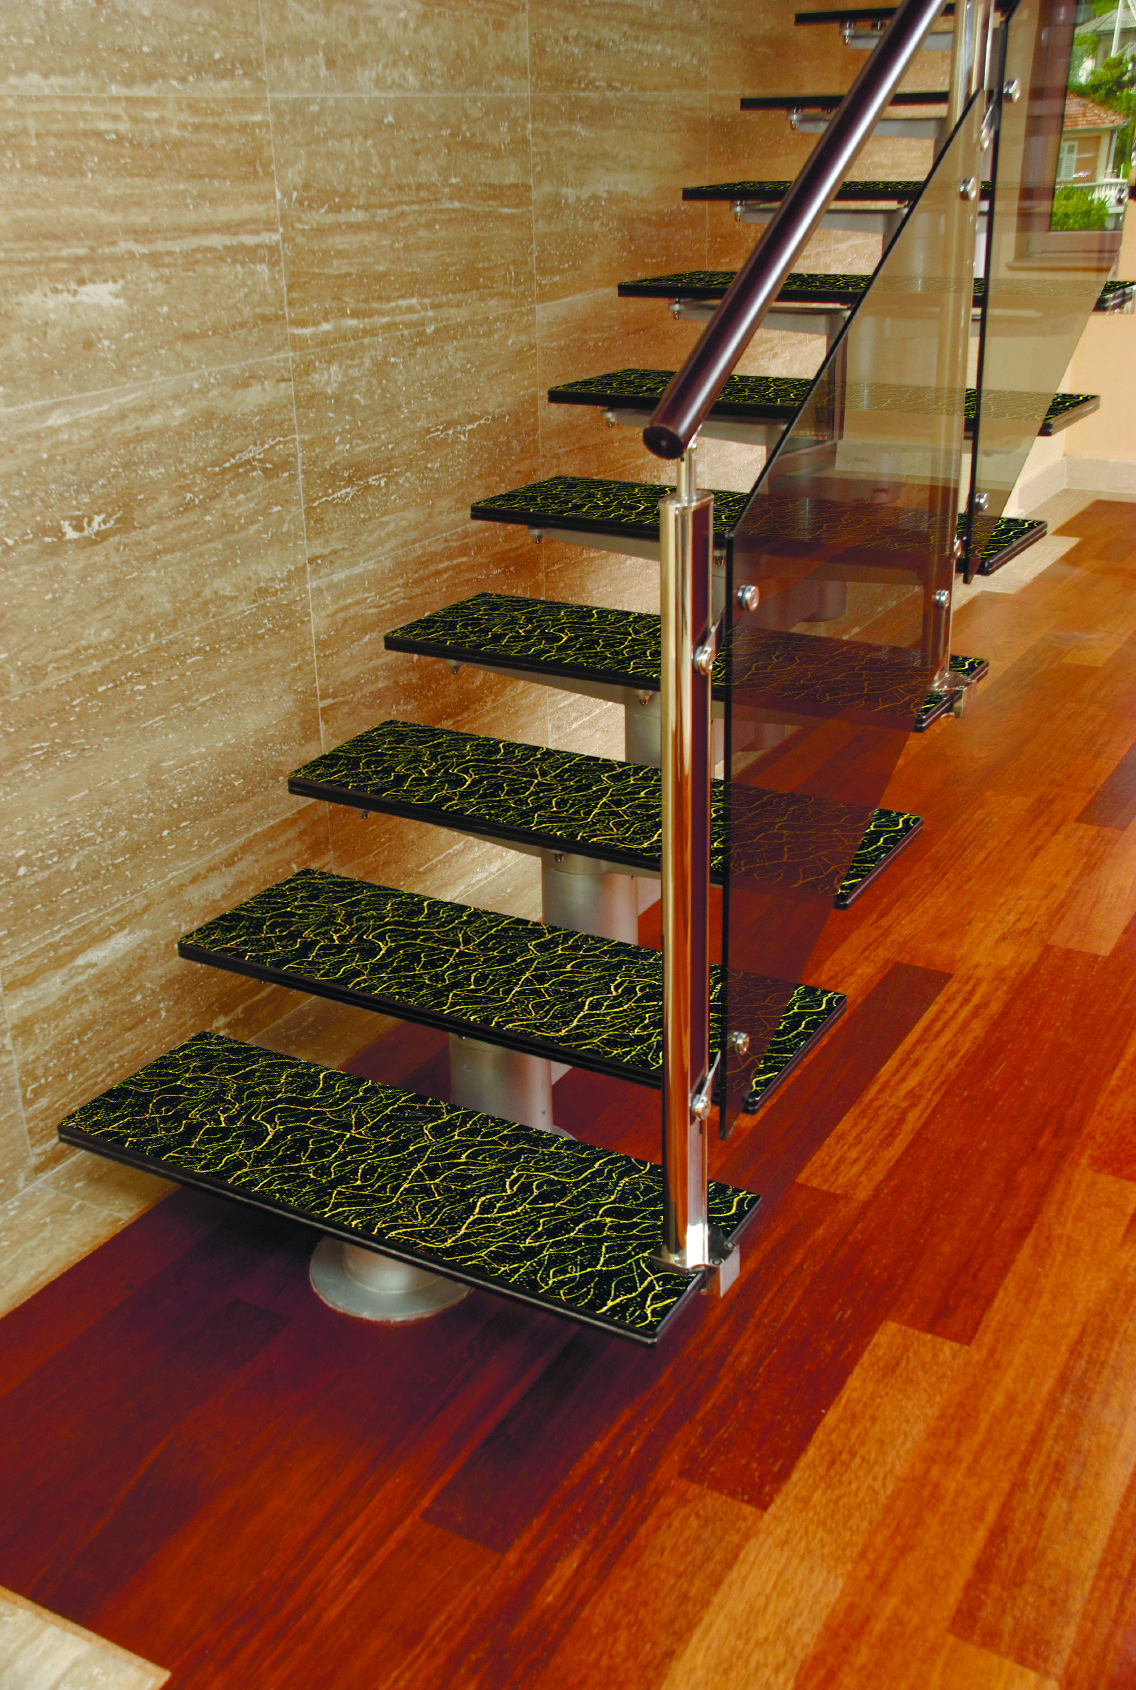 The Image of Modern & Decorative Glass Stair Designs by The Palace of Glass For a Beautiful House